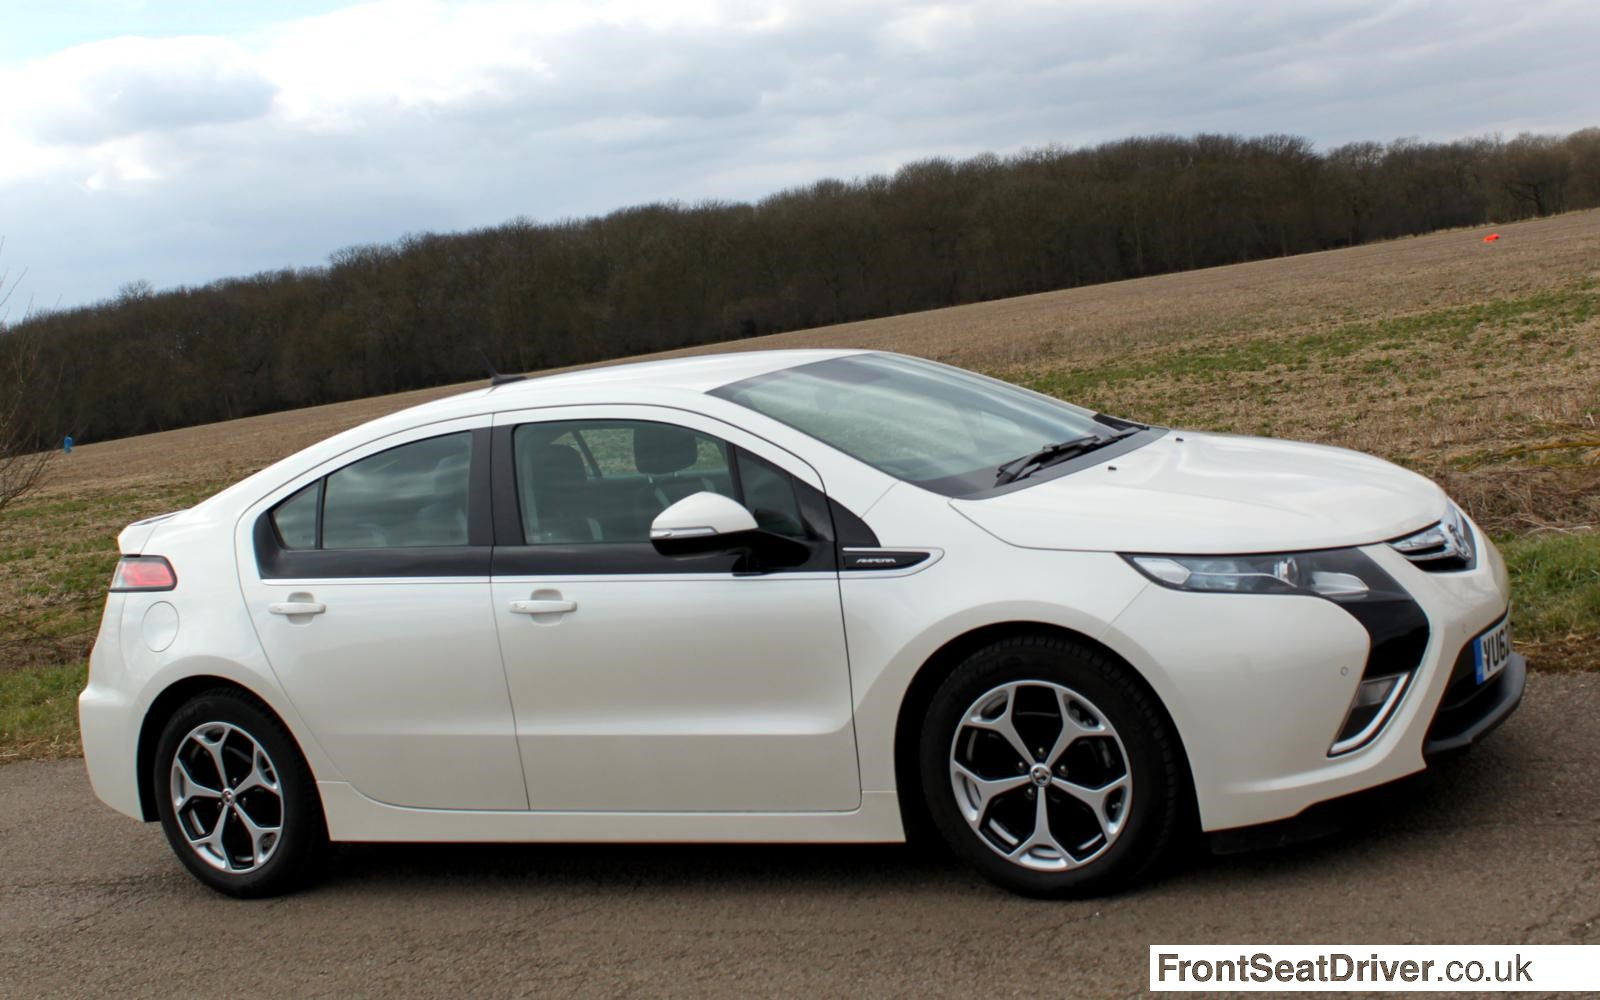 Vauxhall Ampera 2013 Front Right Front Seat Driver